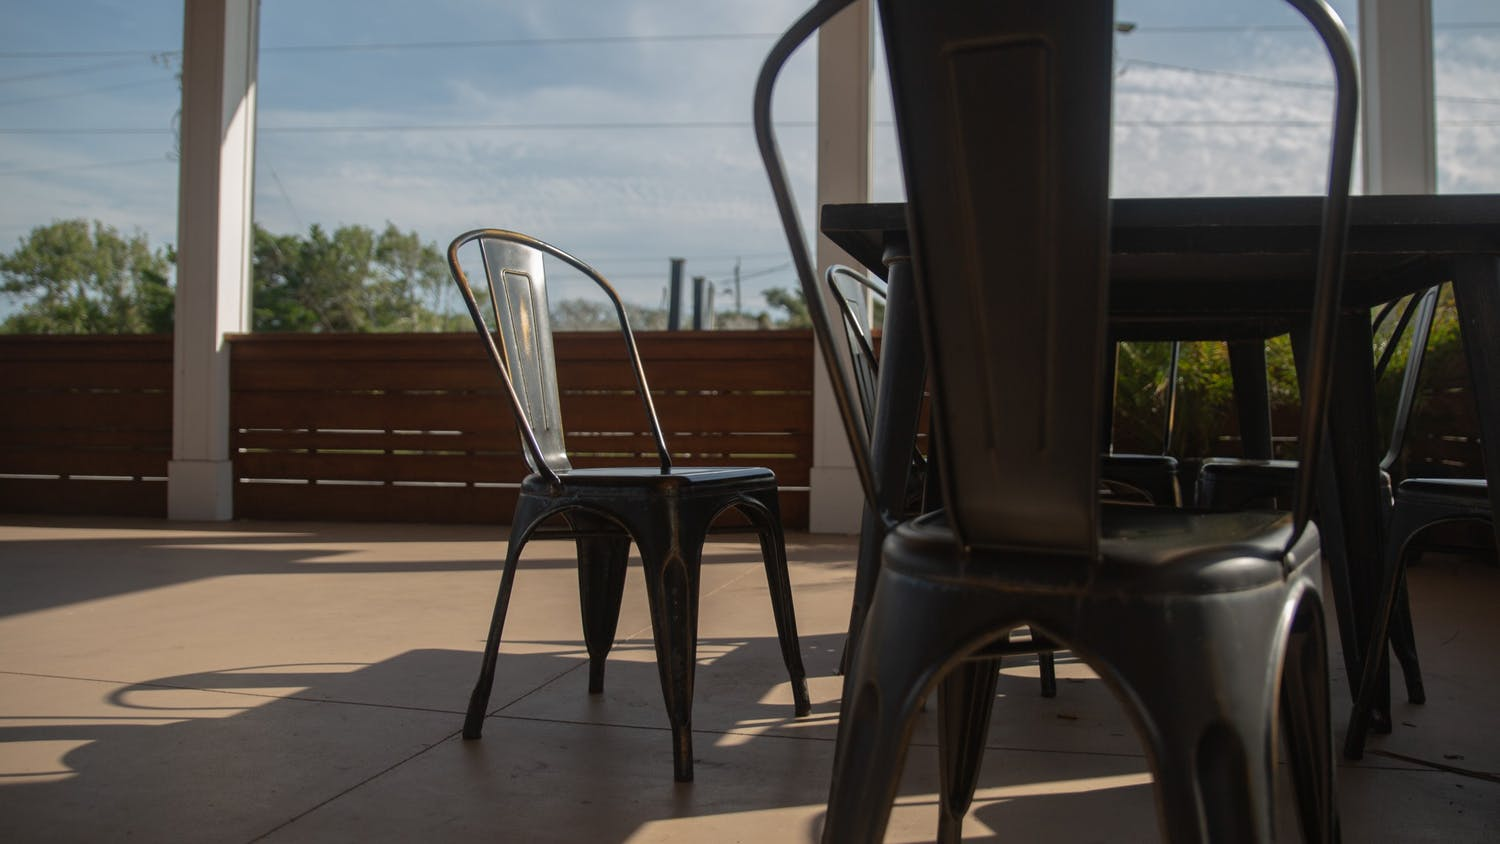 Empty tables sit outside of Table 9 at Atlantic Beach on Monday, Oct. 5, 2020. As fall approaches and temperatures drop, Chapel Hill restaurants are looking to adapt their outdoor seating options while complying with COVID guidelines.